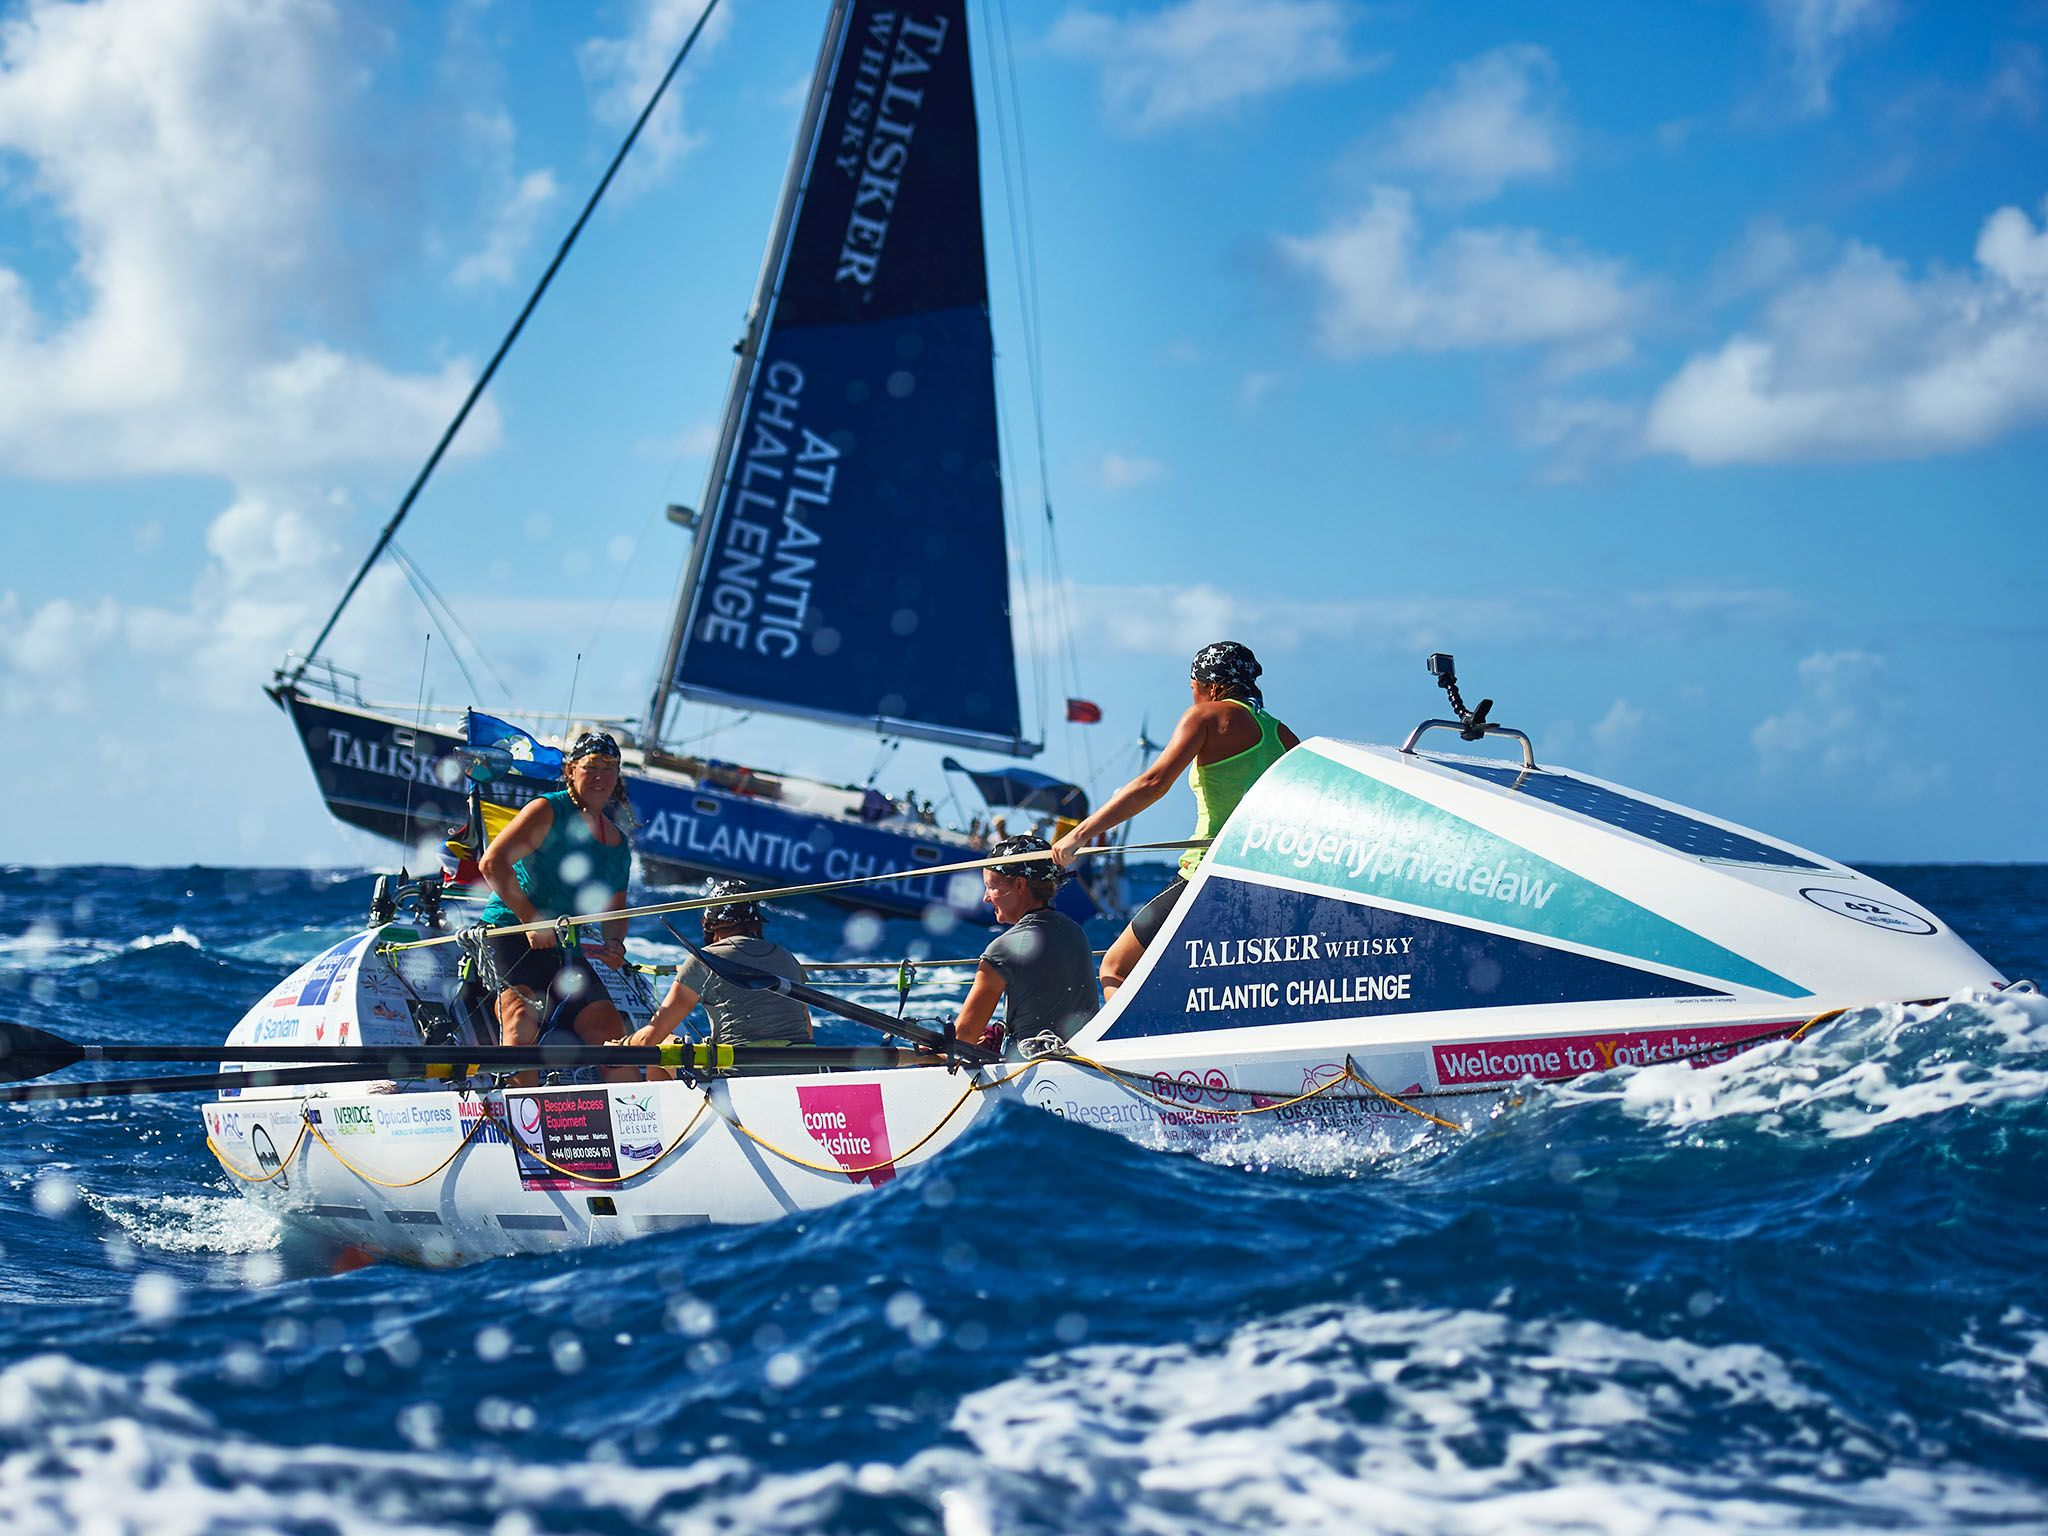 Antigua: Yorkshire Rows complete the Talisker Whisky Atlantic Challenge (LtoR) Janette Benaddi,... [Photo of the day - June 2016]